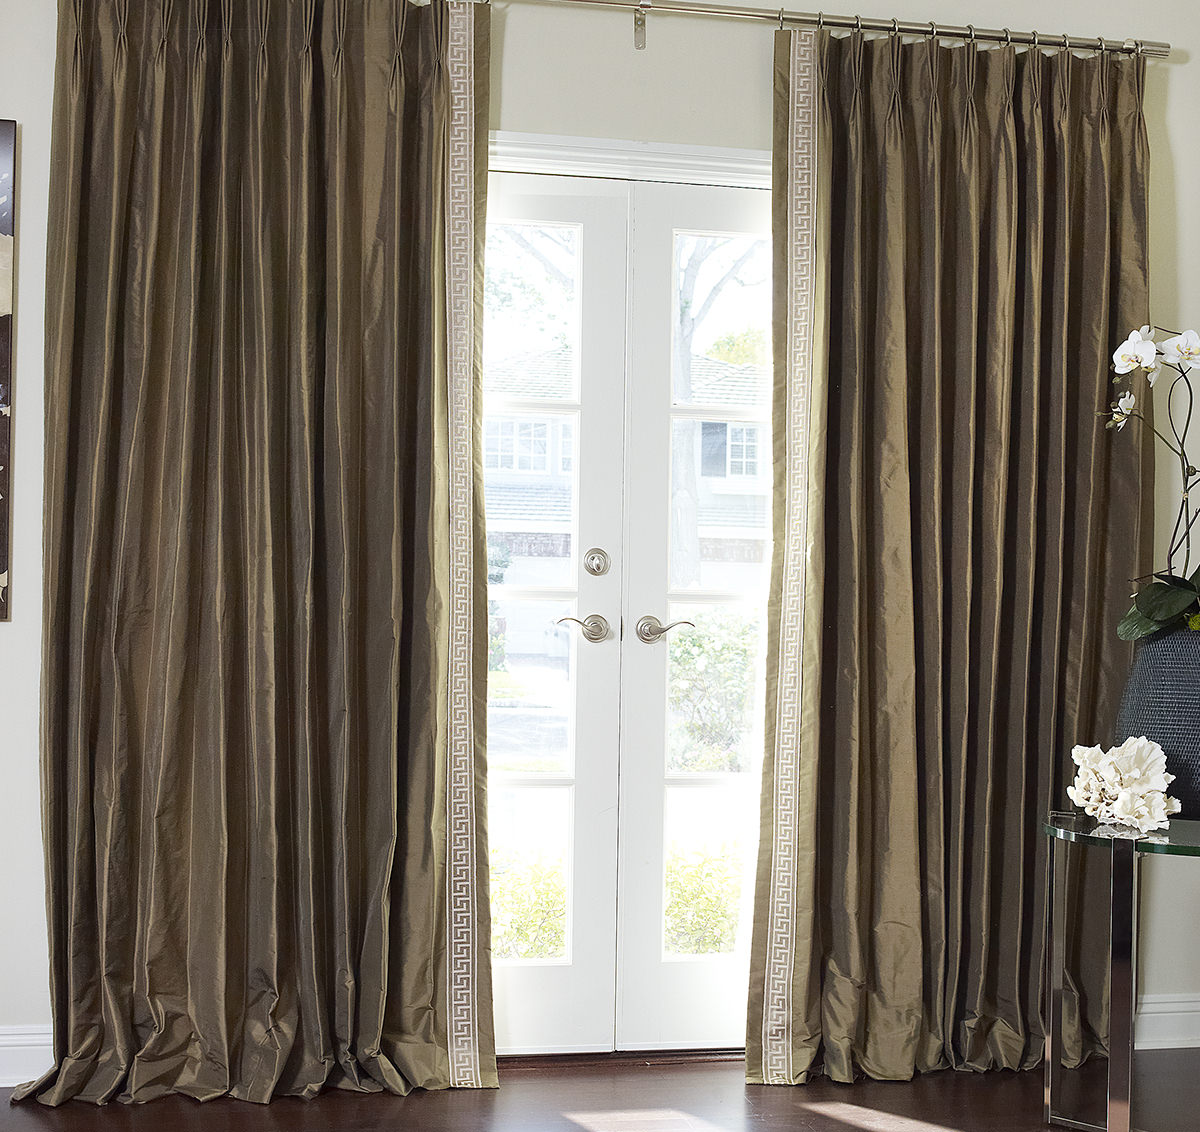 Greek Key Contemporary Custom Drapery in French Pleat